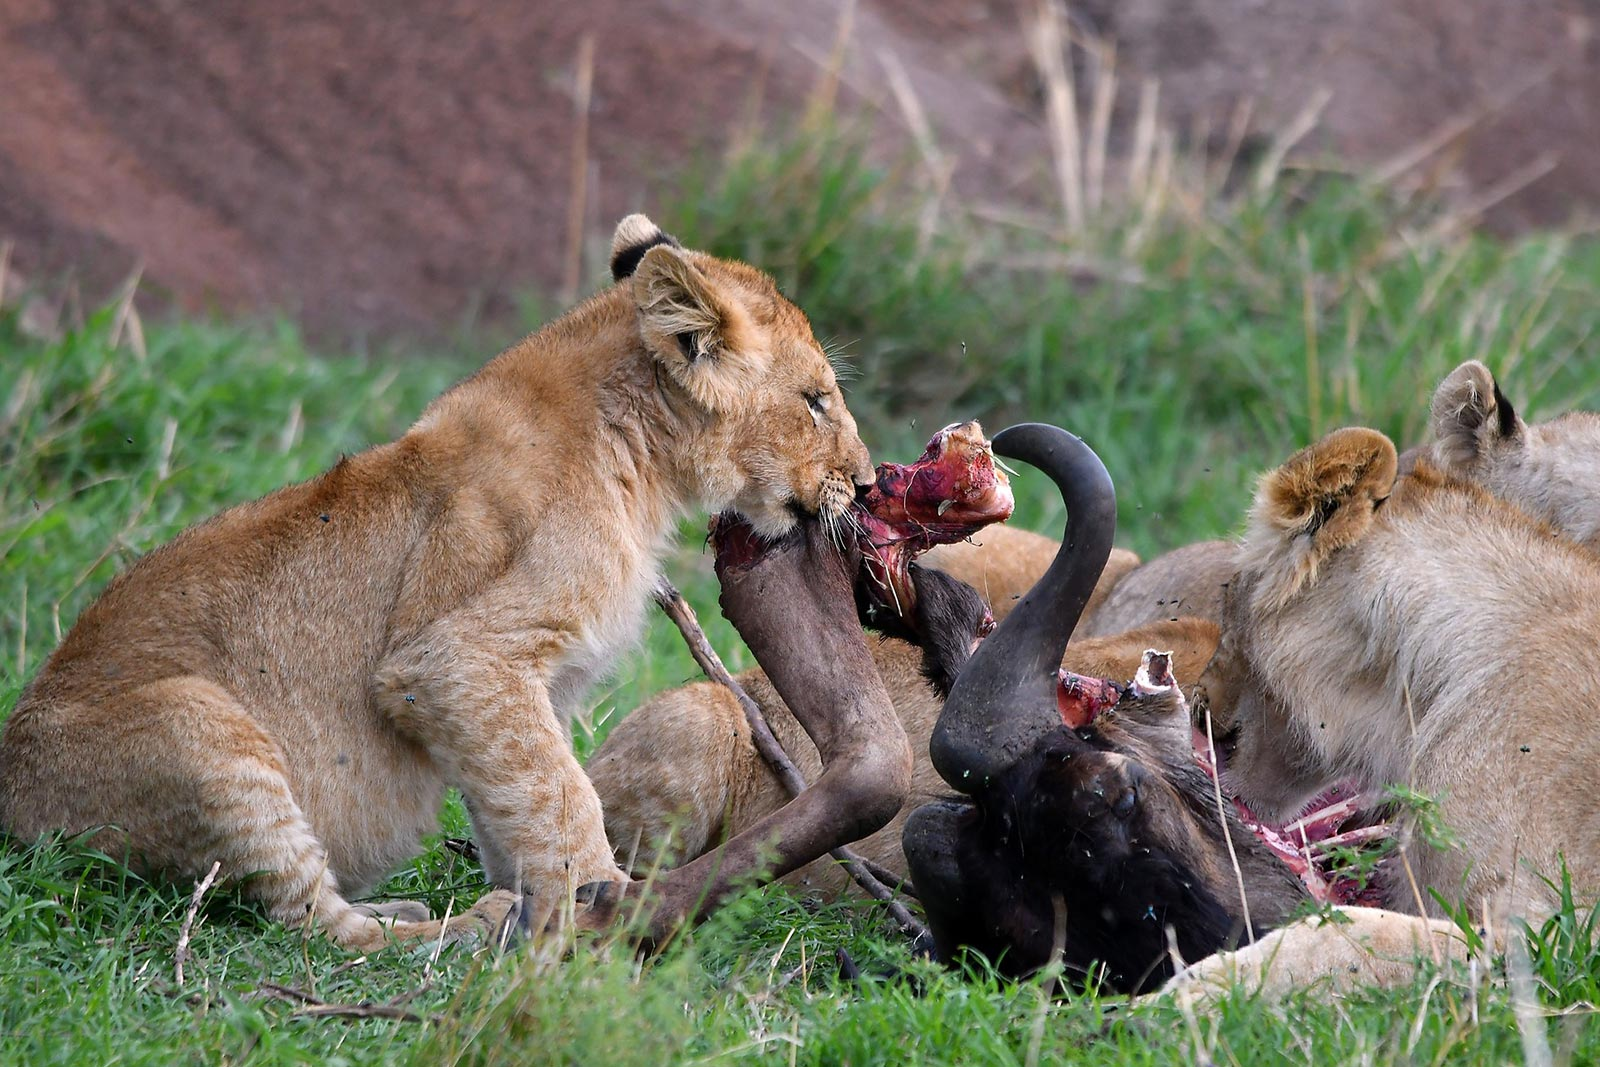 Day 3 — Lion tracking experience and game drive in Kasenyi